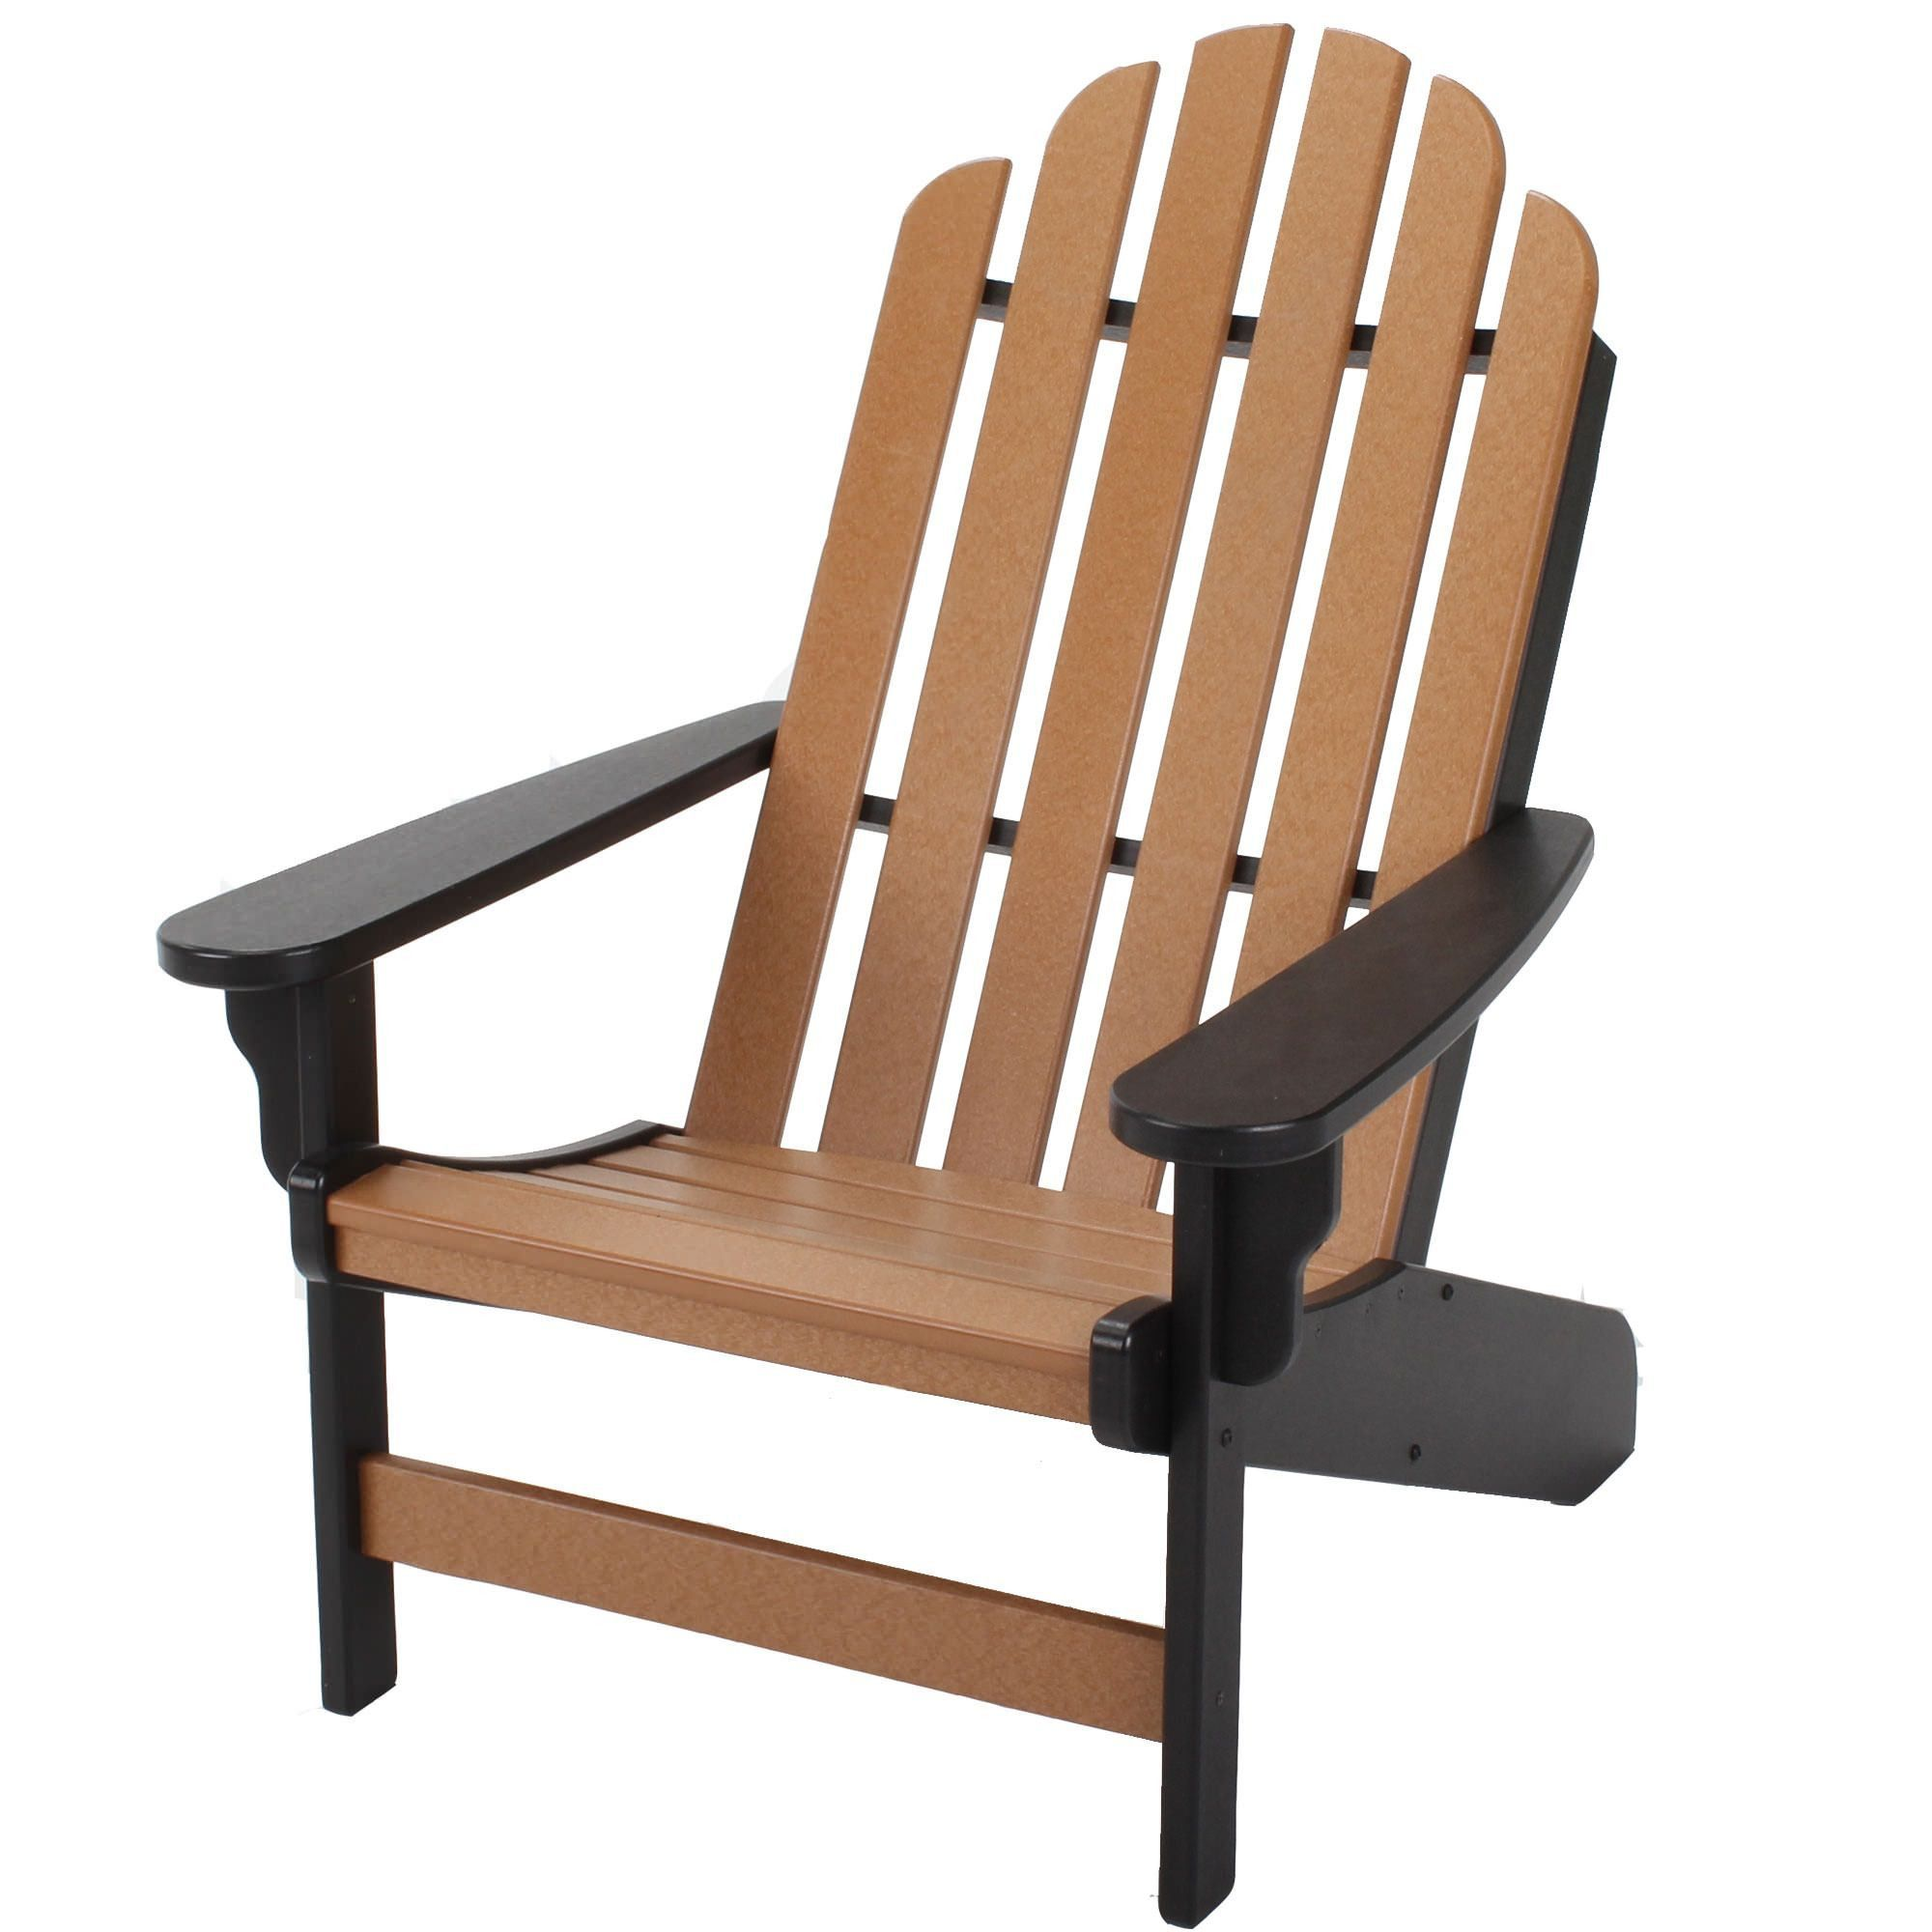 Durawood Gartenmöbel Pawleys Island Durawood Essential Adirondack Chair Products